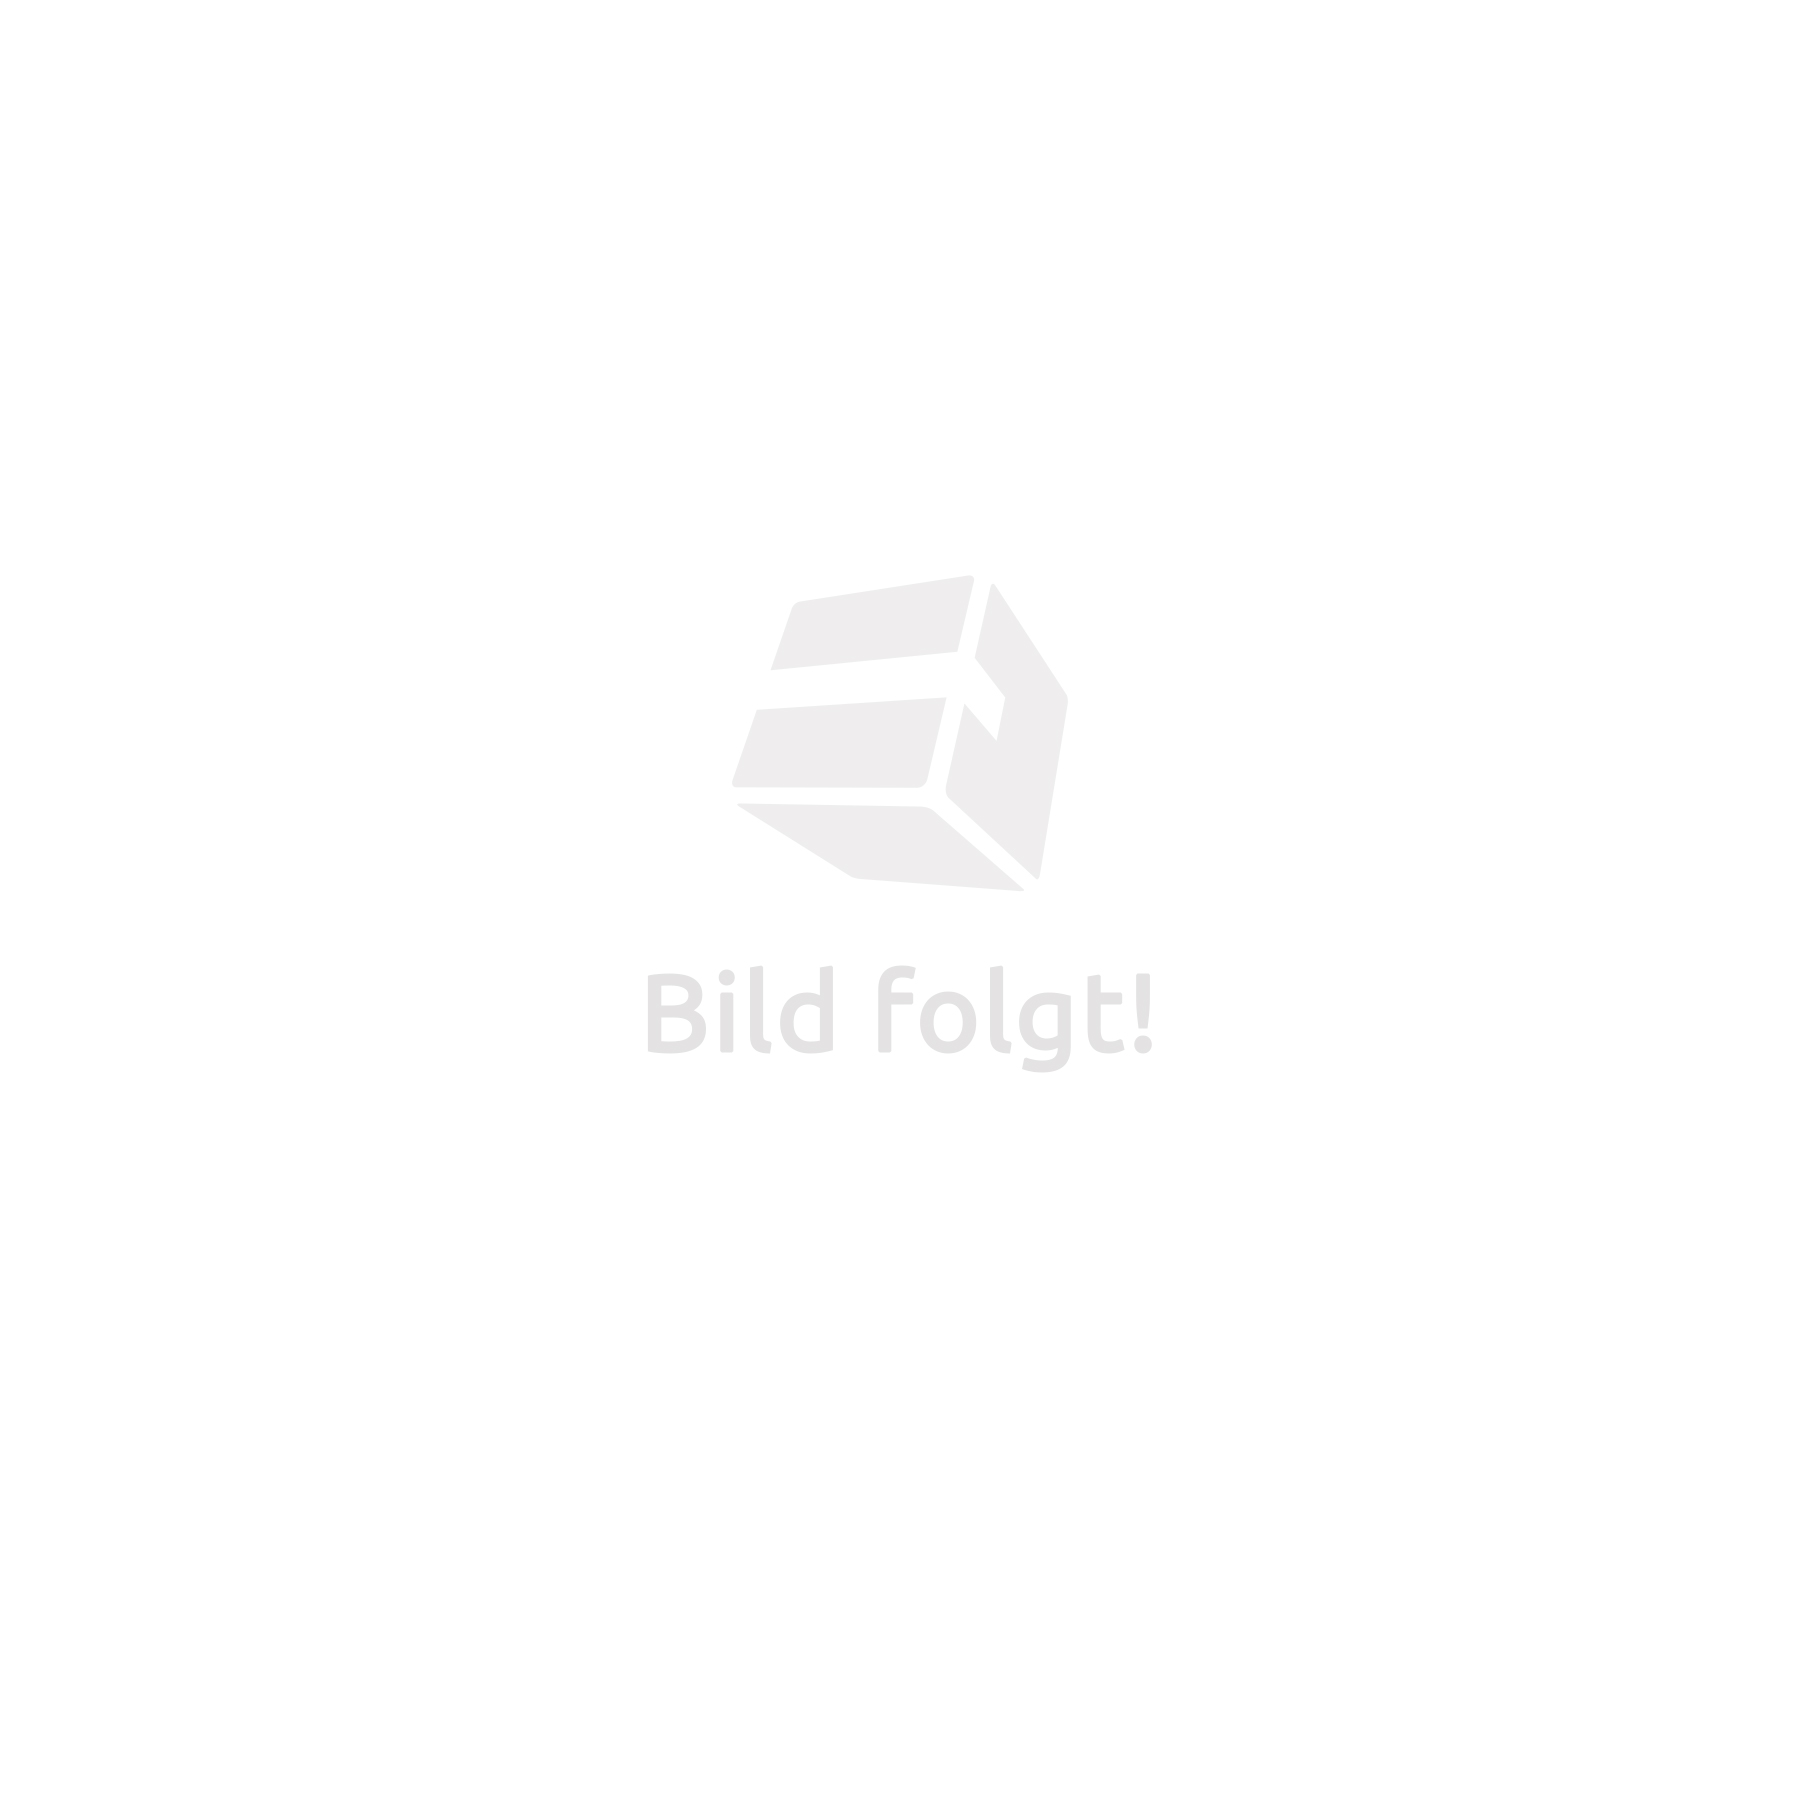 Metal bed frame with slatted base white 200 x 140 cm